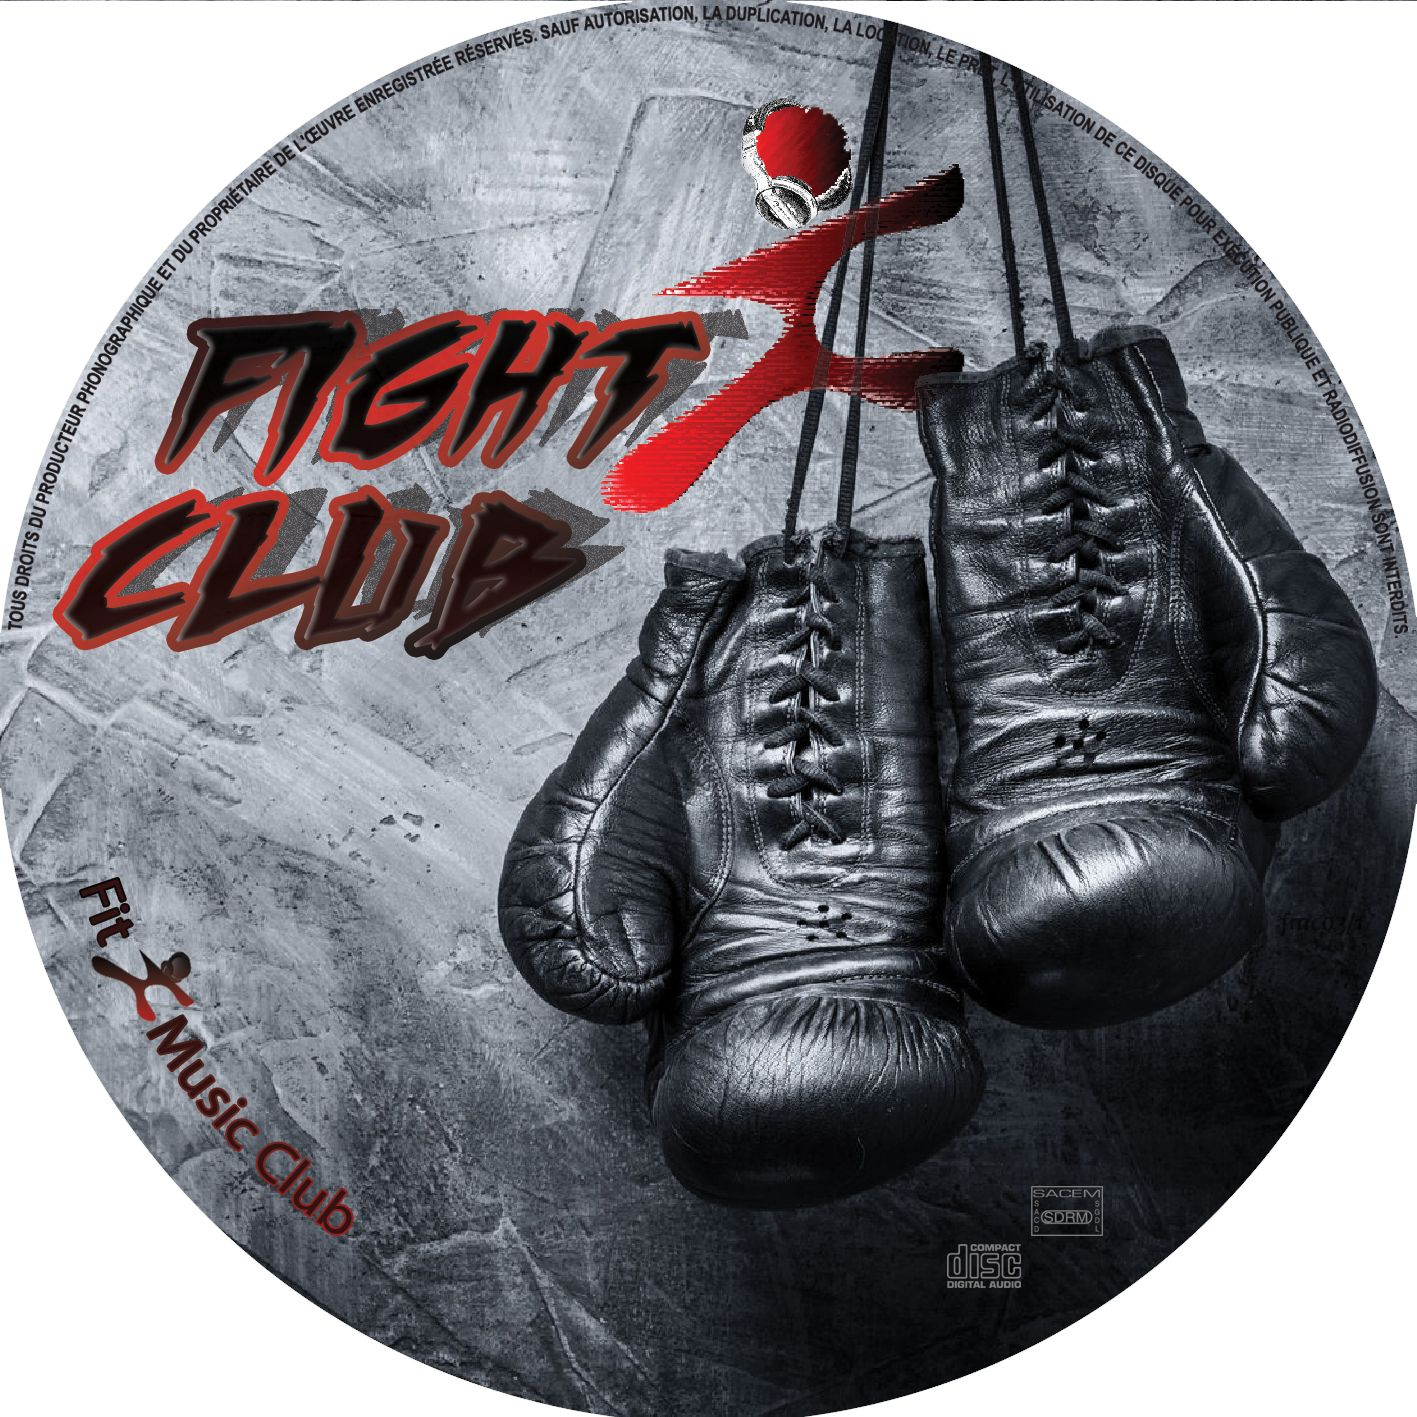 CD fightclub site